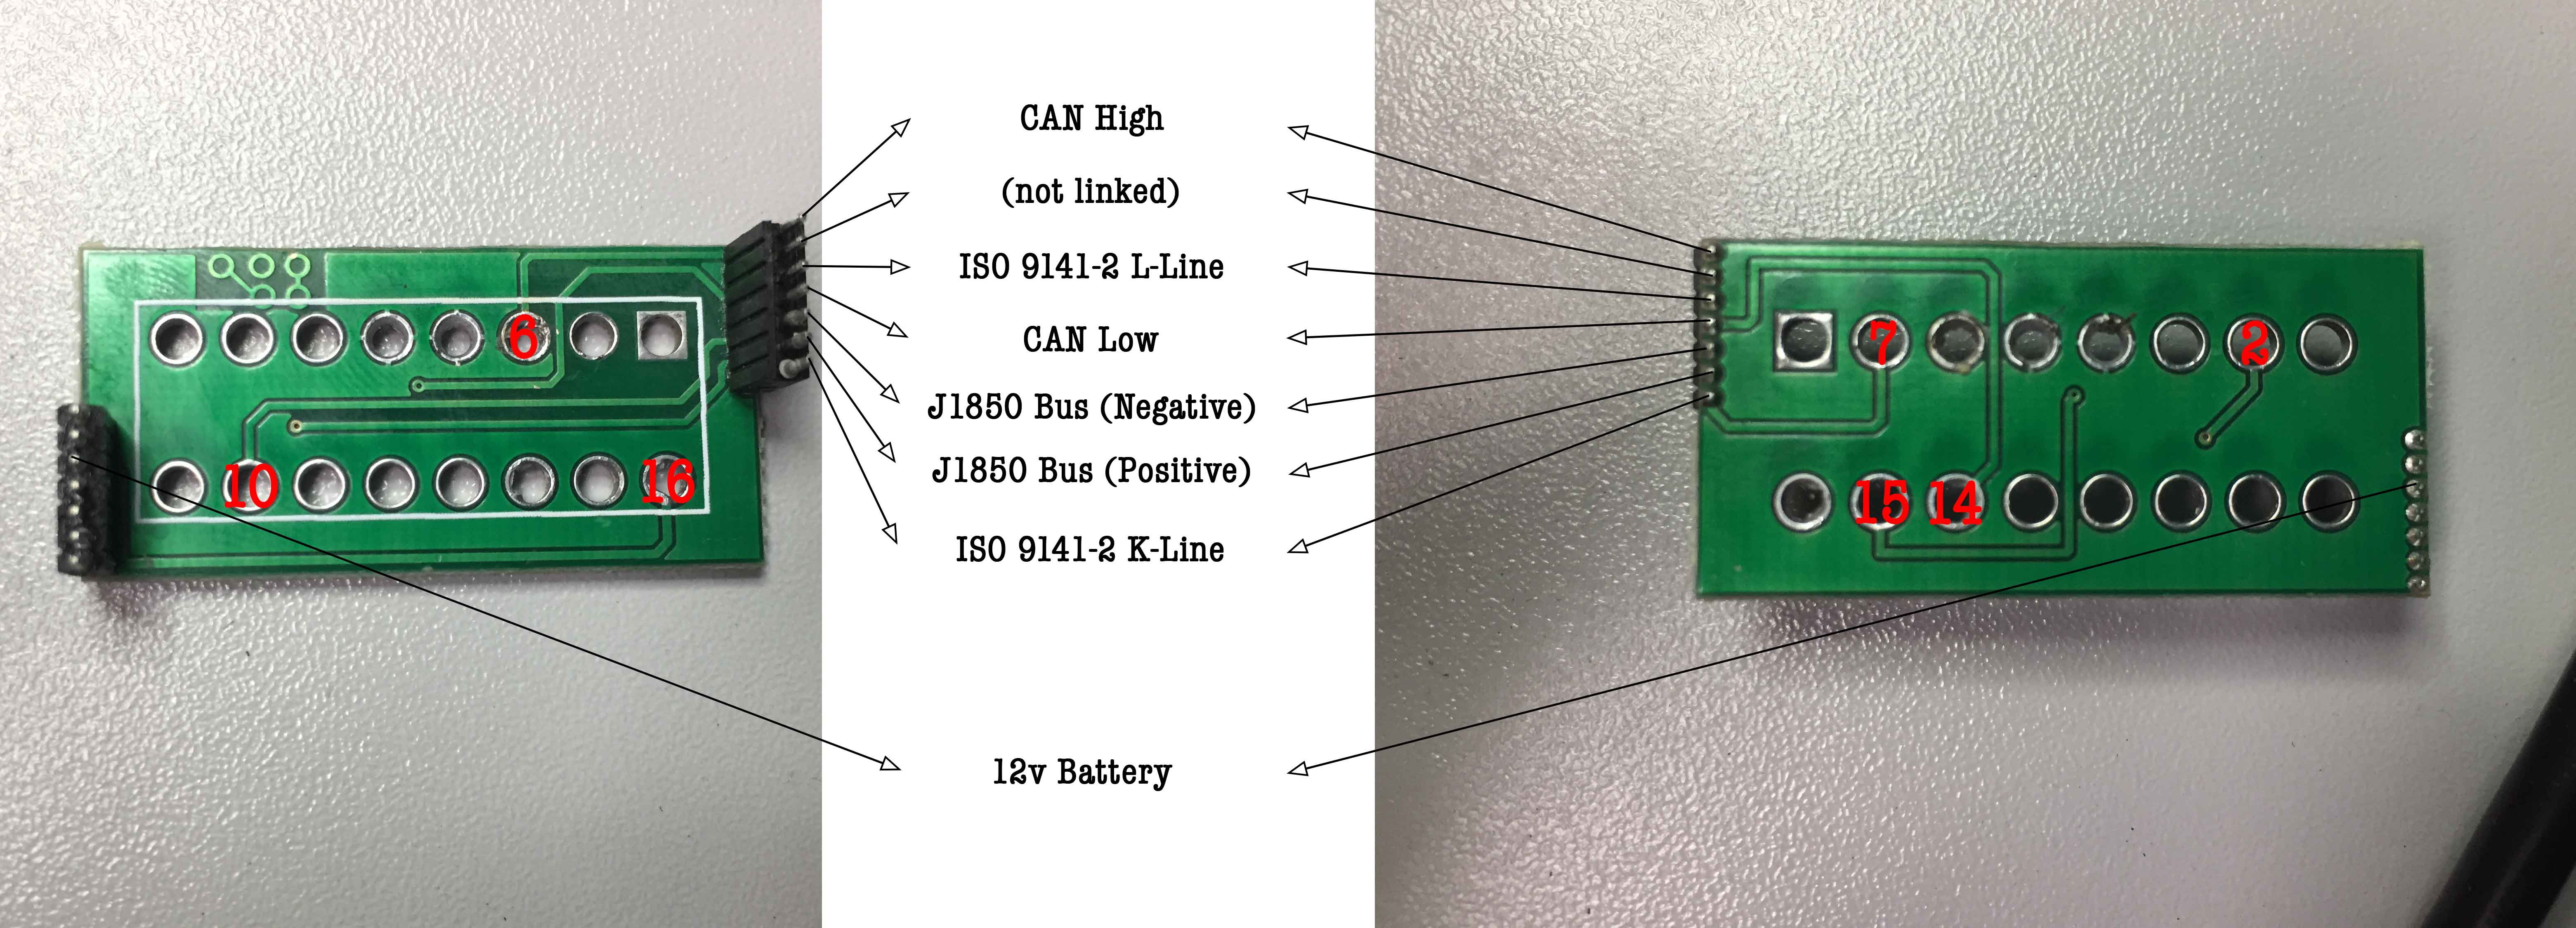 Reverse engineering of the Nitro OBD2